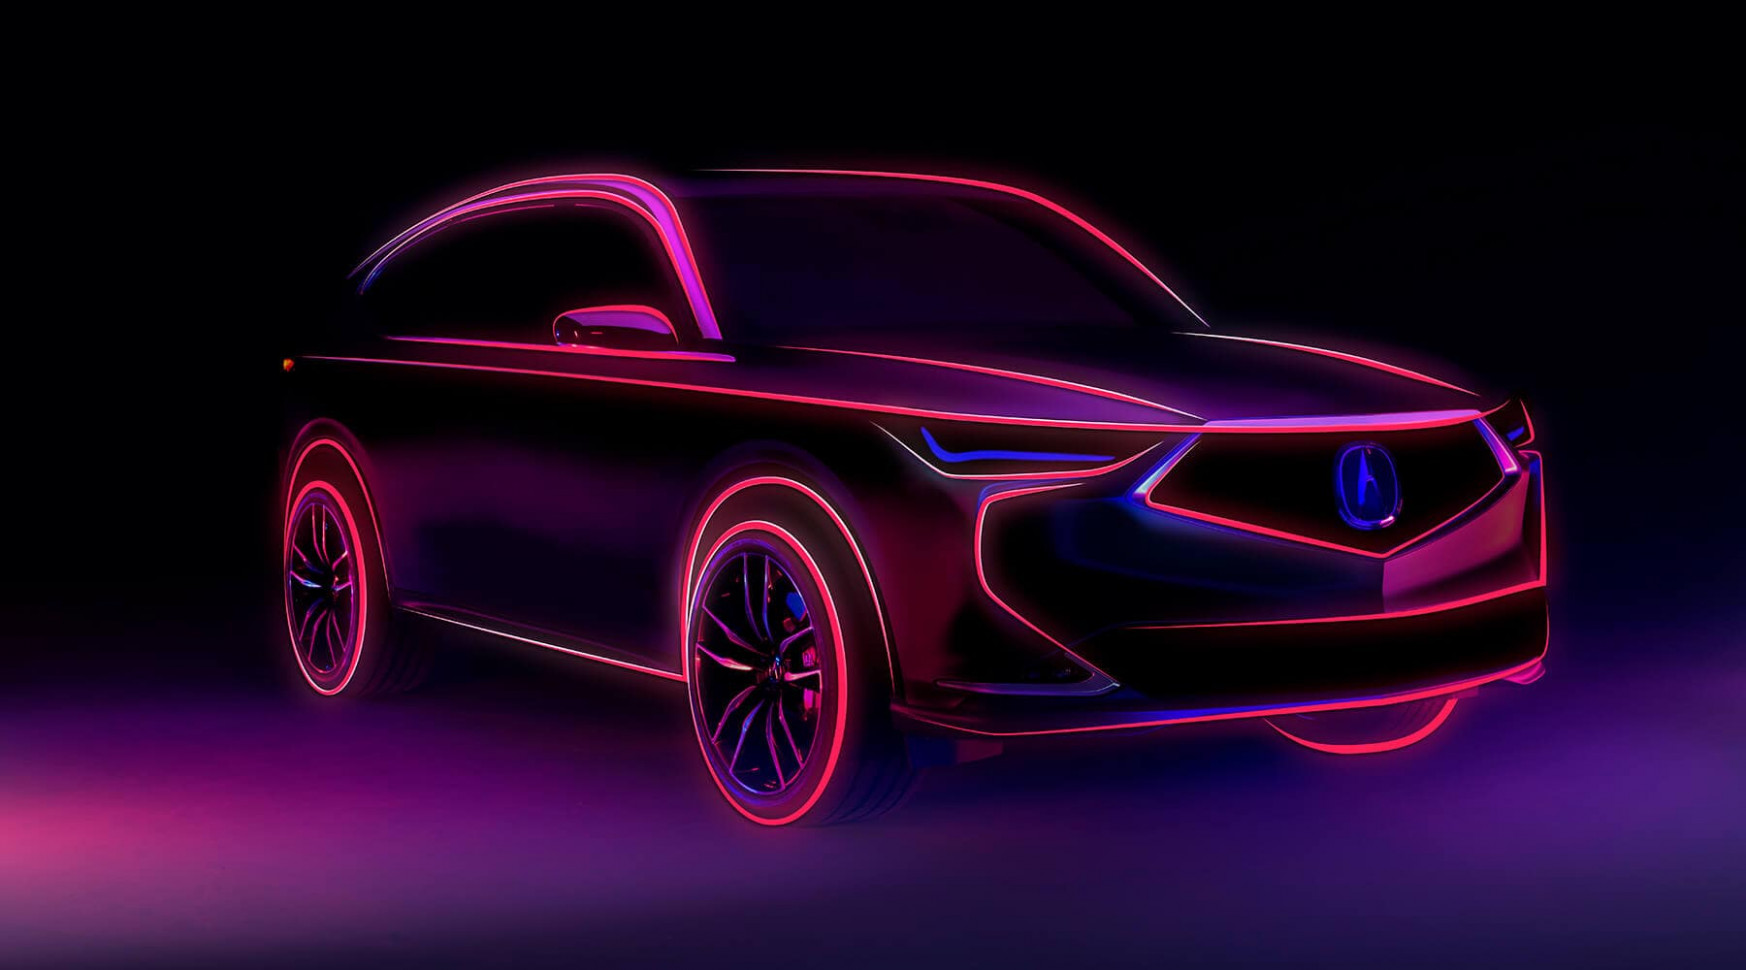 Spesification When Does Acura Release 2022 Models